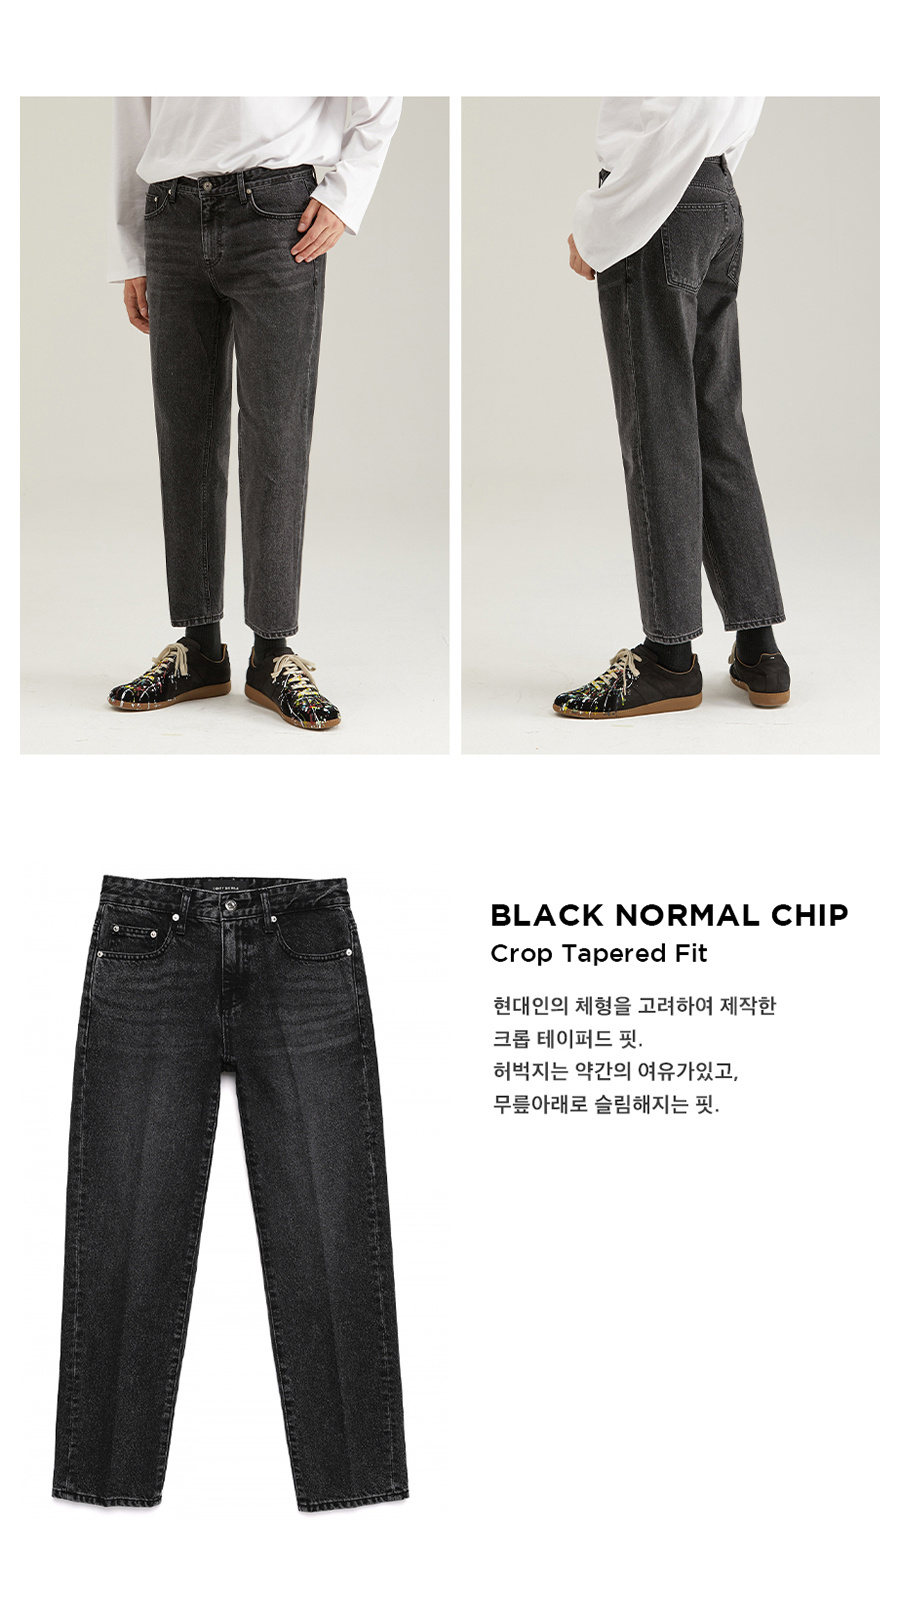 86로드(86ROAD) [테이퍼드핏]BLACK NORMAL CHIP